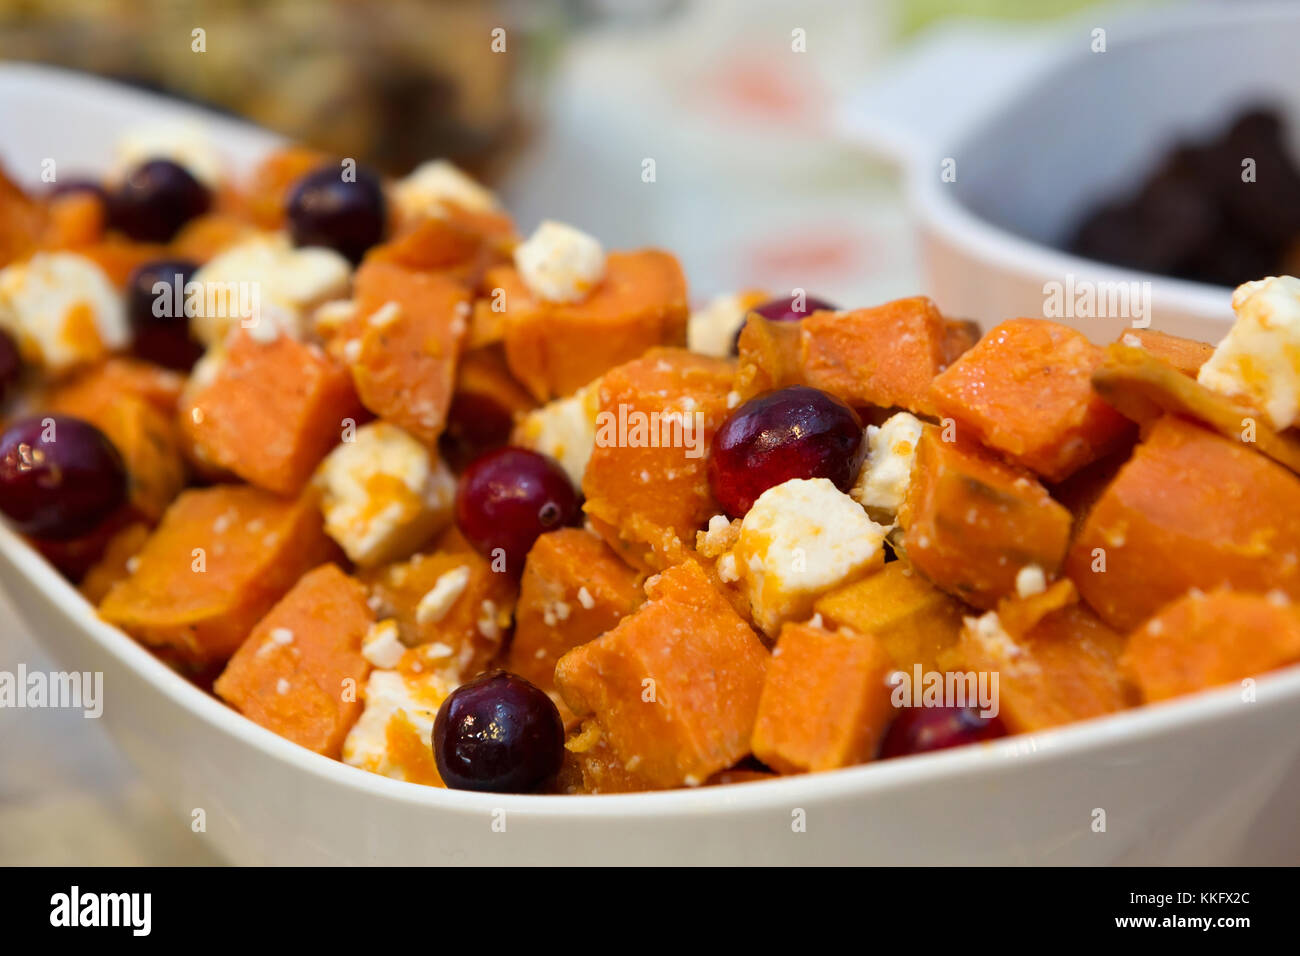 Tasty Sweet Potato Appetizer Dish with Cranberries and Feta Stock Photo